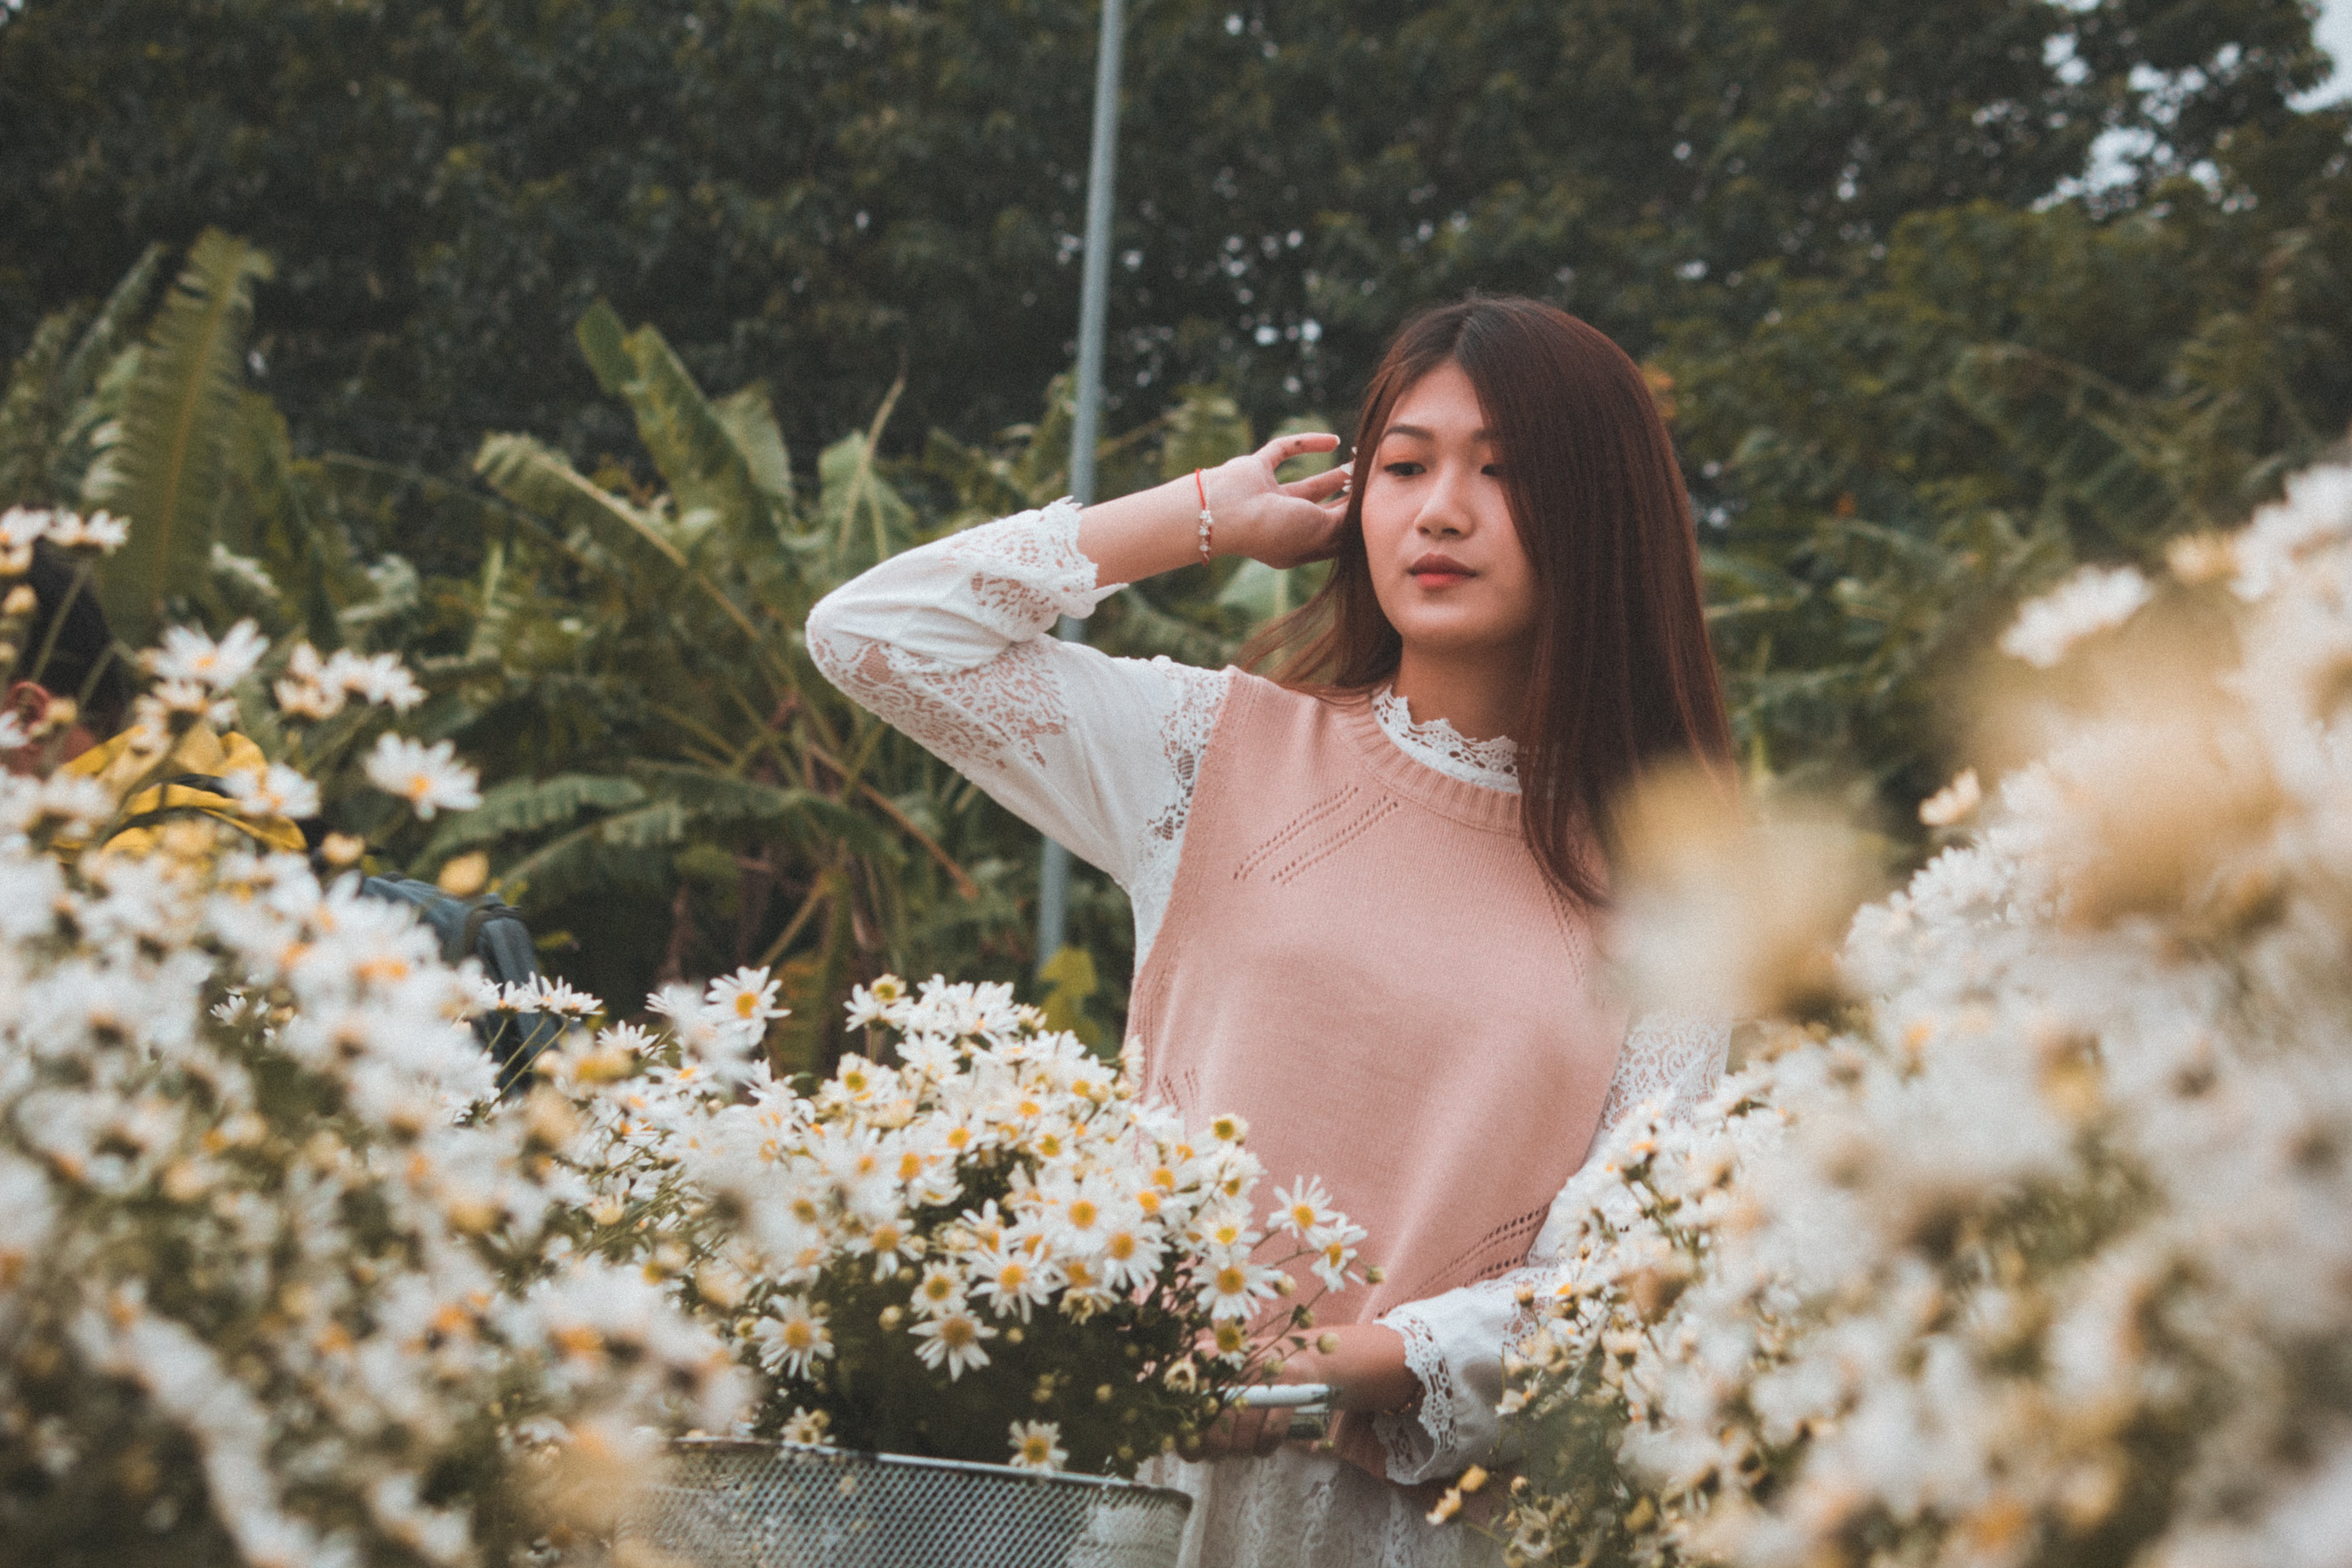 Photo of Woman Surrounded by Flowers